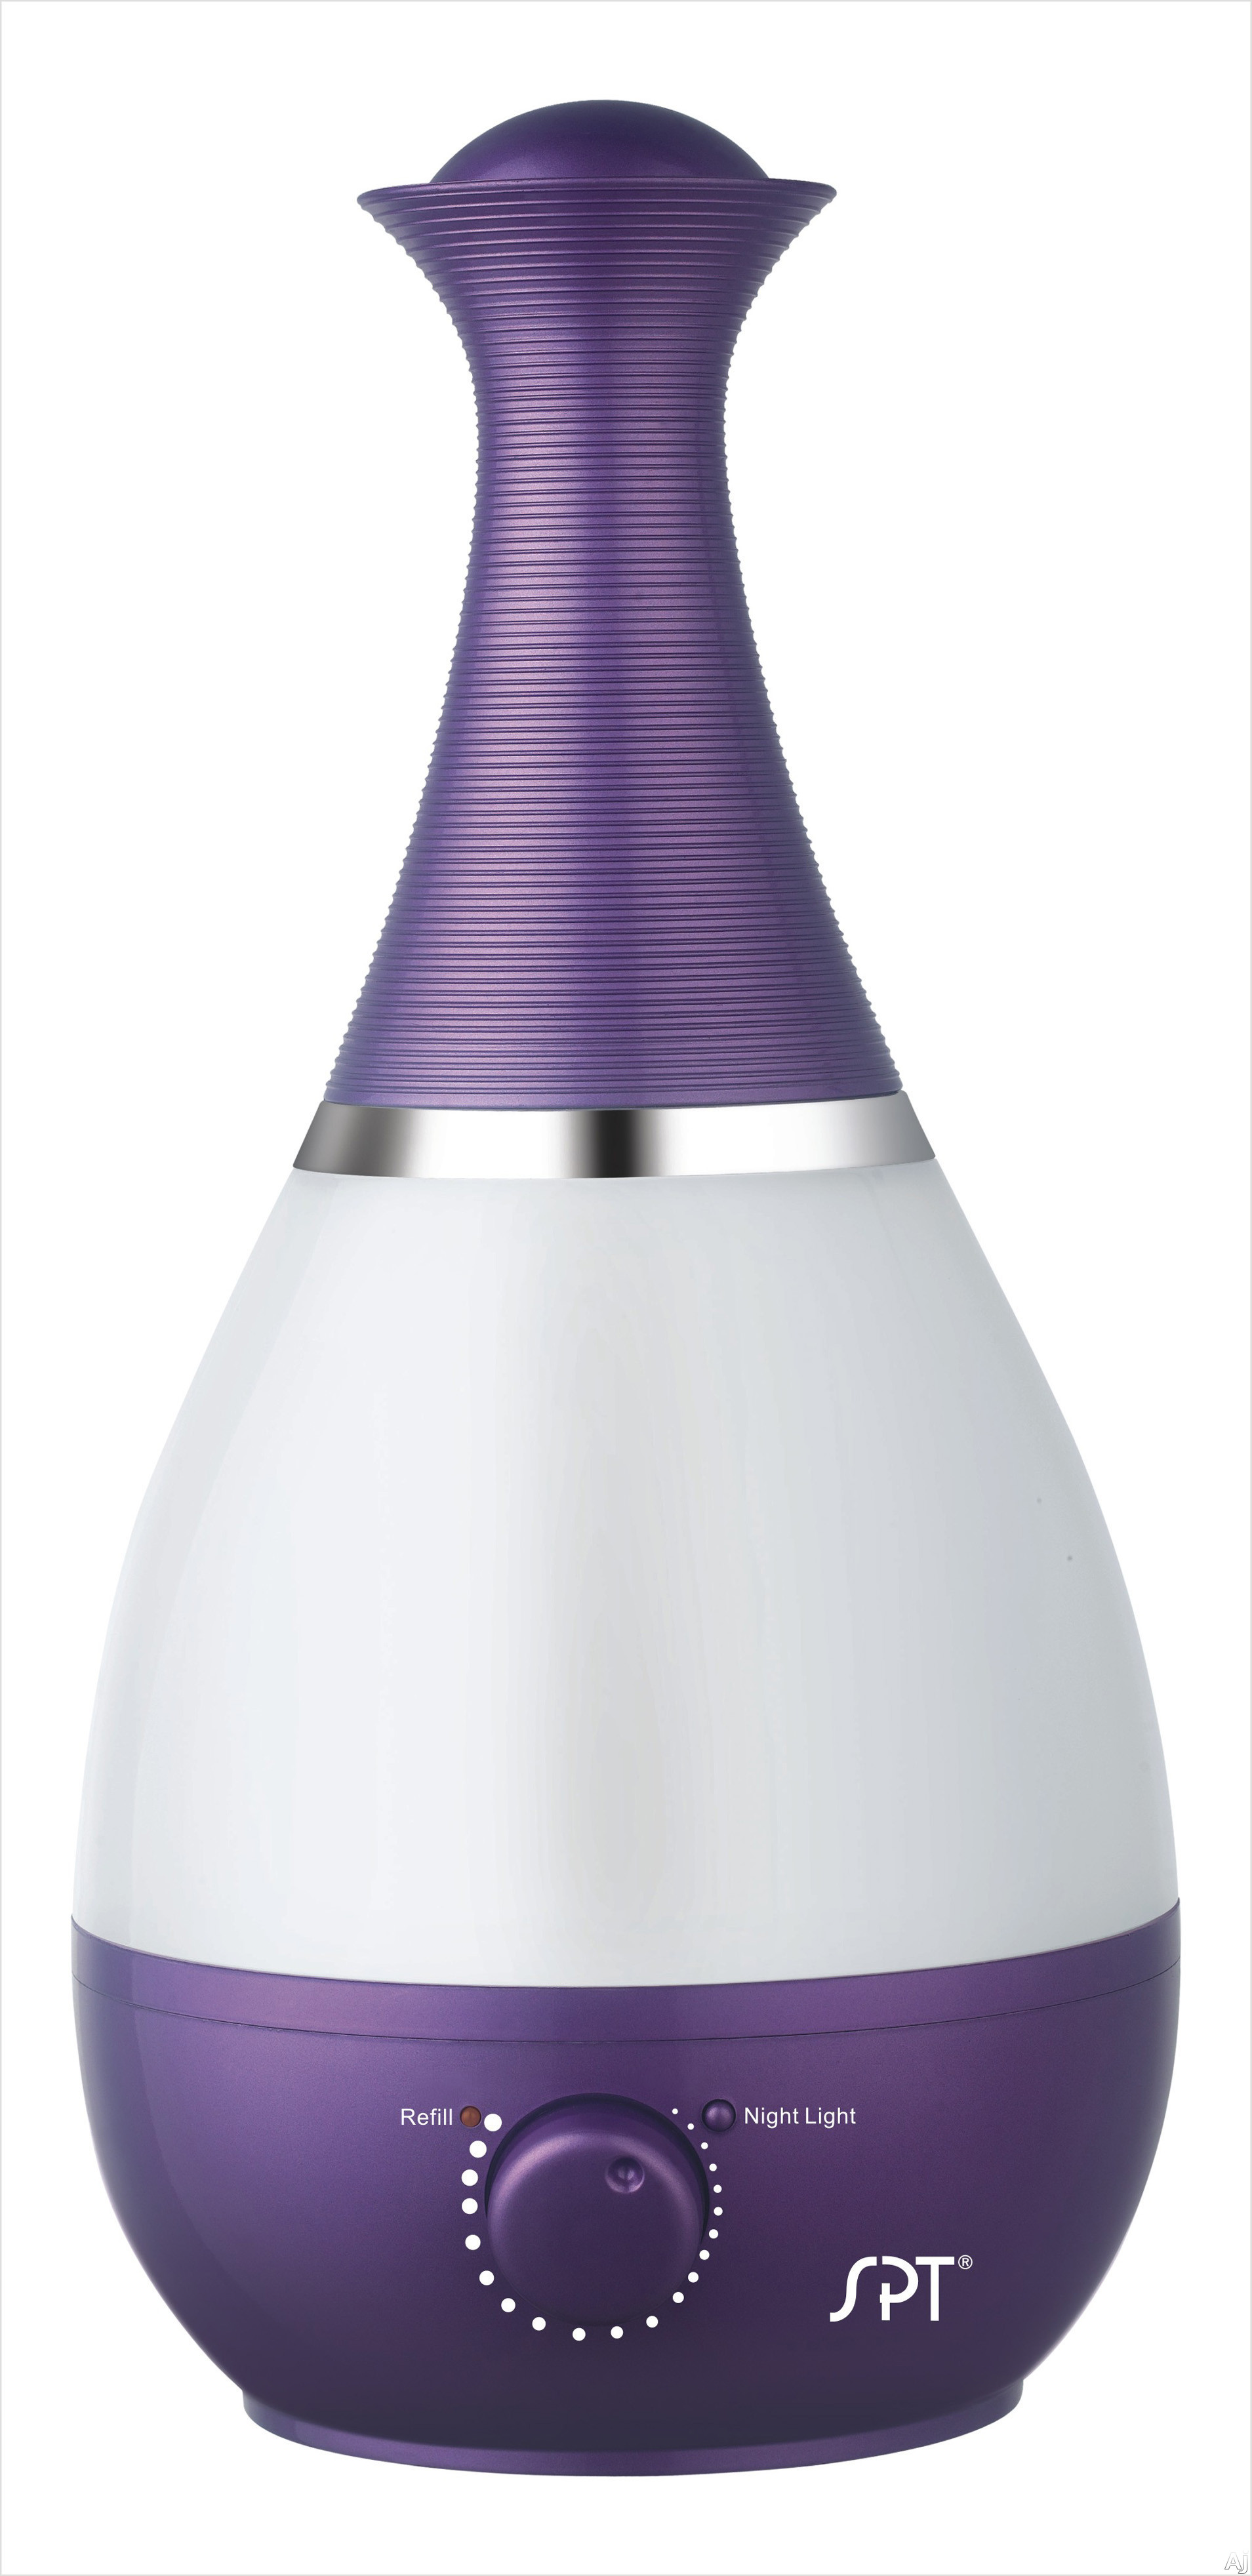 Sunpentown SU2550V Evaporative Air Cooler with Ultrasonic Humidifier and Fragrance Diffuser: Violet SU2550V